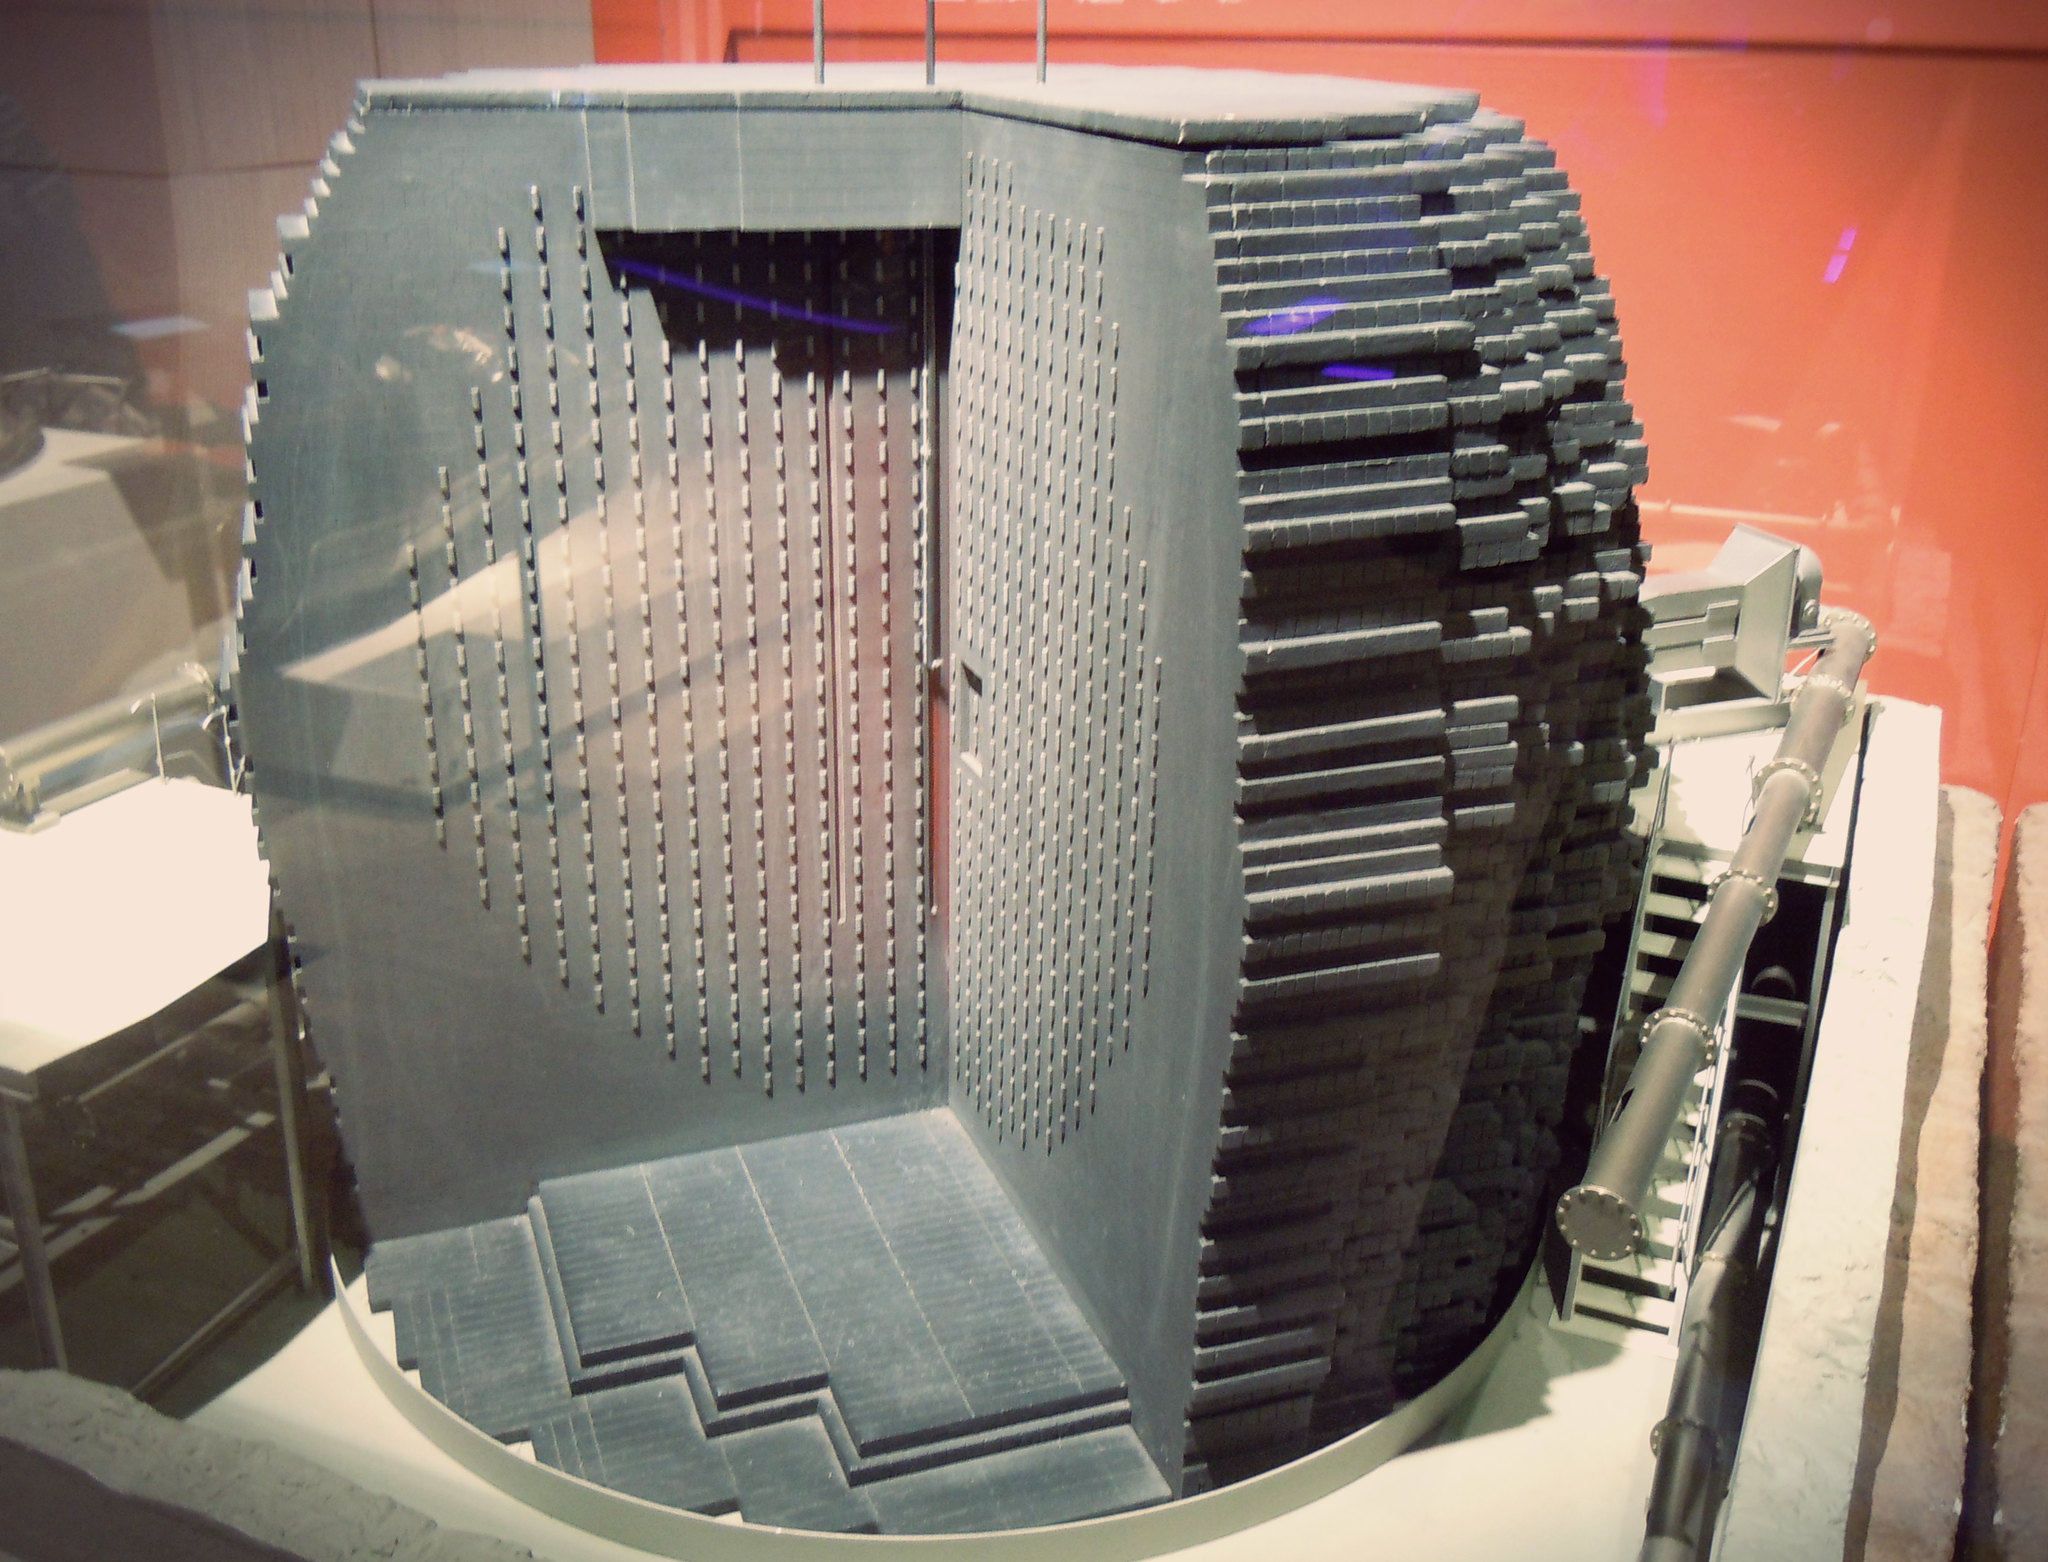 One of the first nuclear reactor model